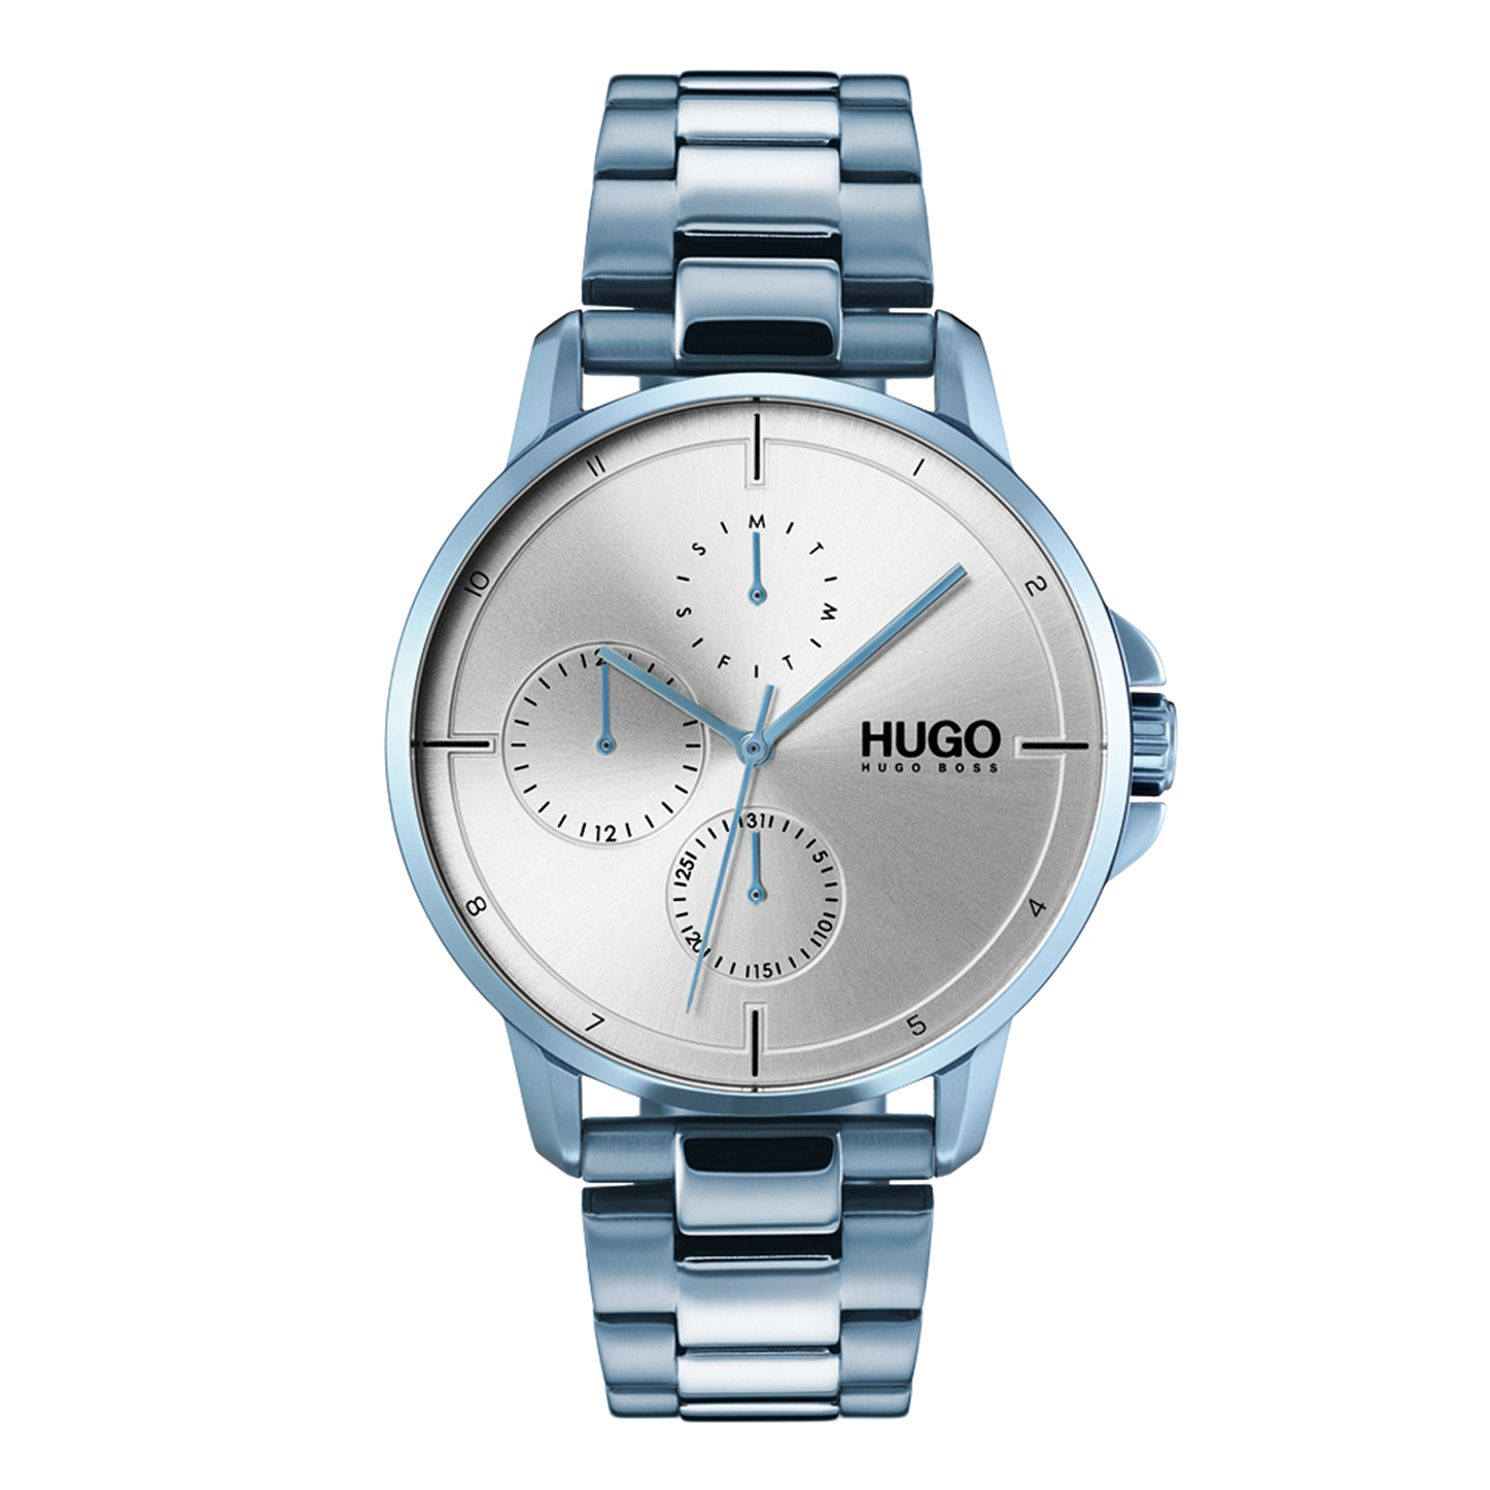 HUGO FOCUS Men's Ice Blue IP Stainless Steel Bracelet Watch - Product number 9647910